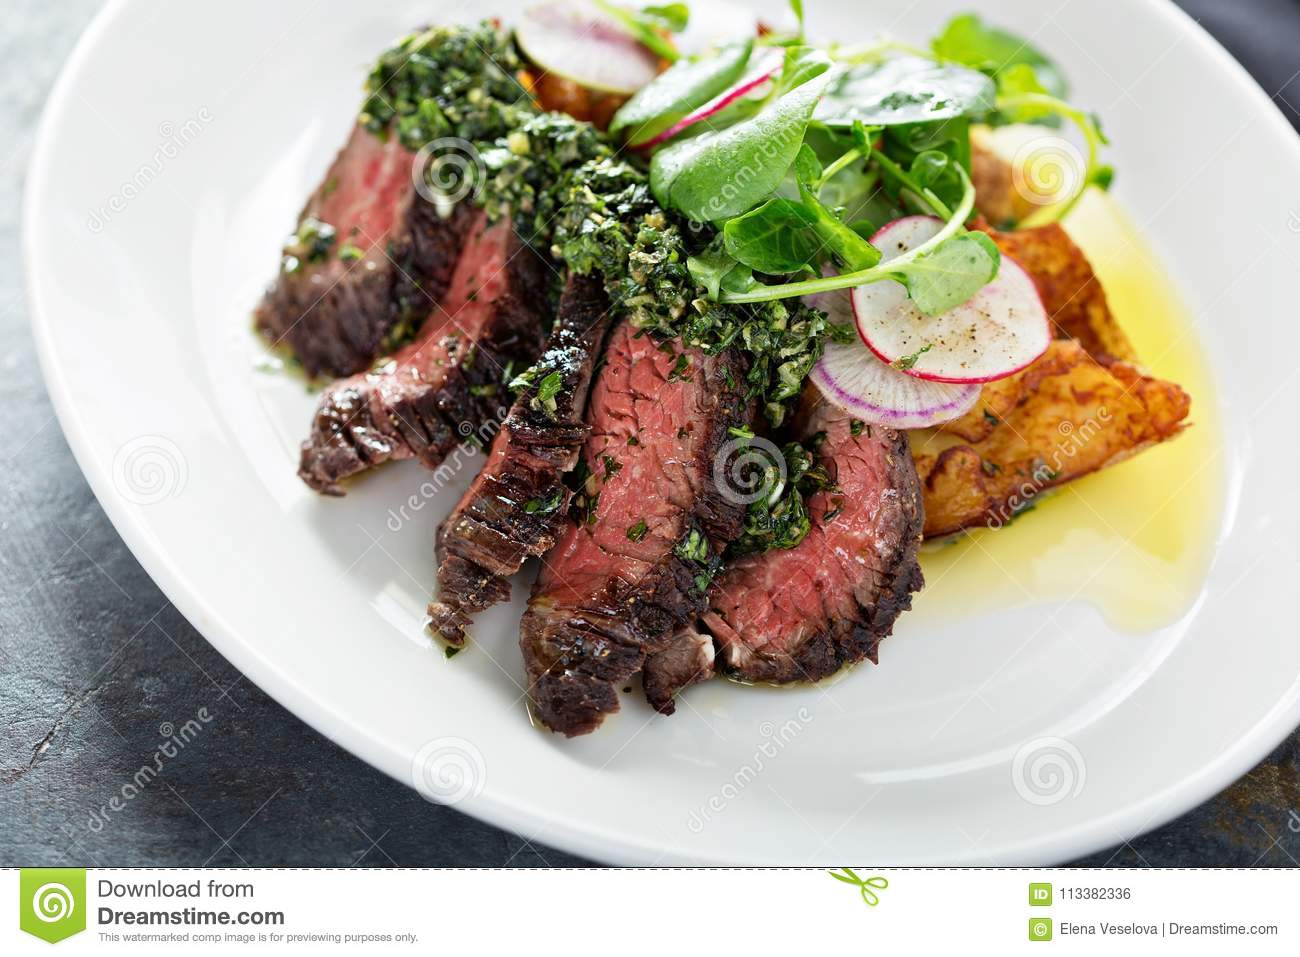 Beef Steak Sliced On A Plate Stock Photo Image Of Board Grilled 113382336